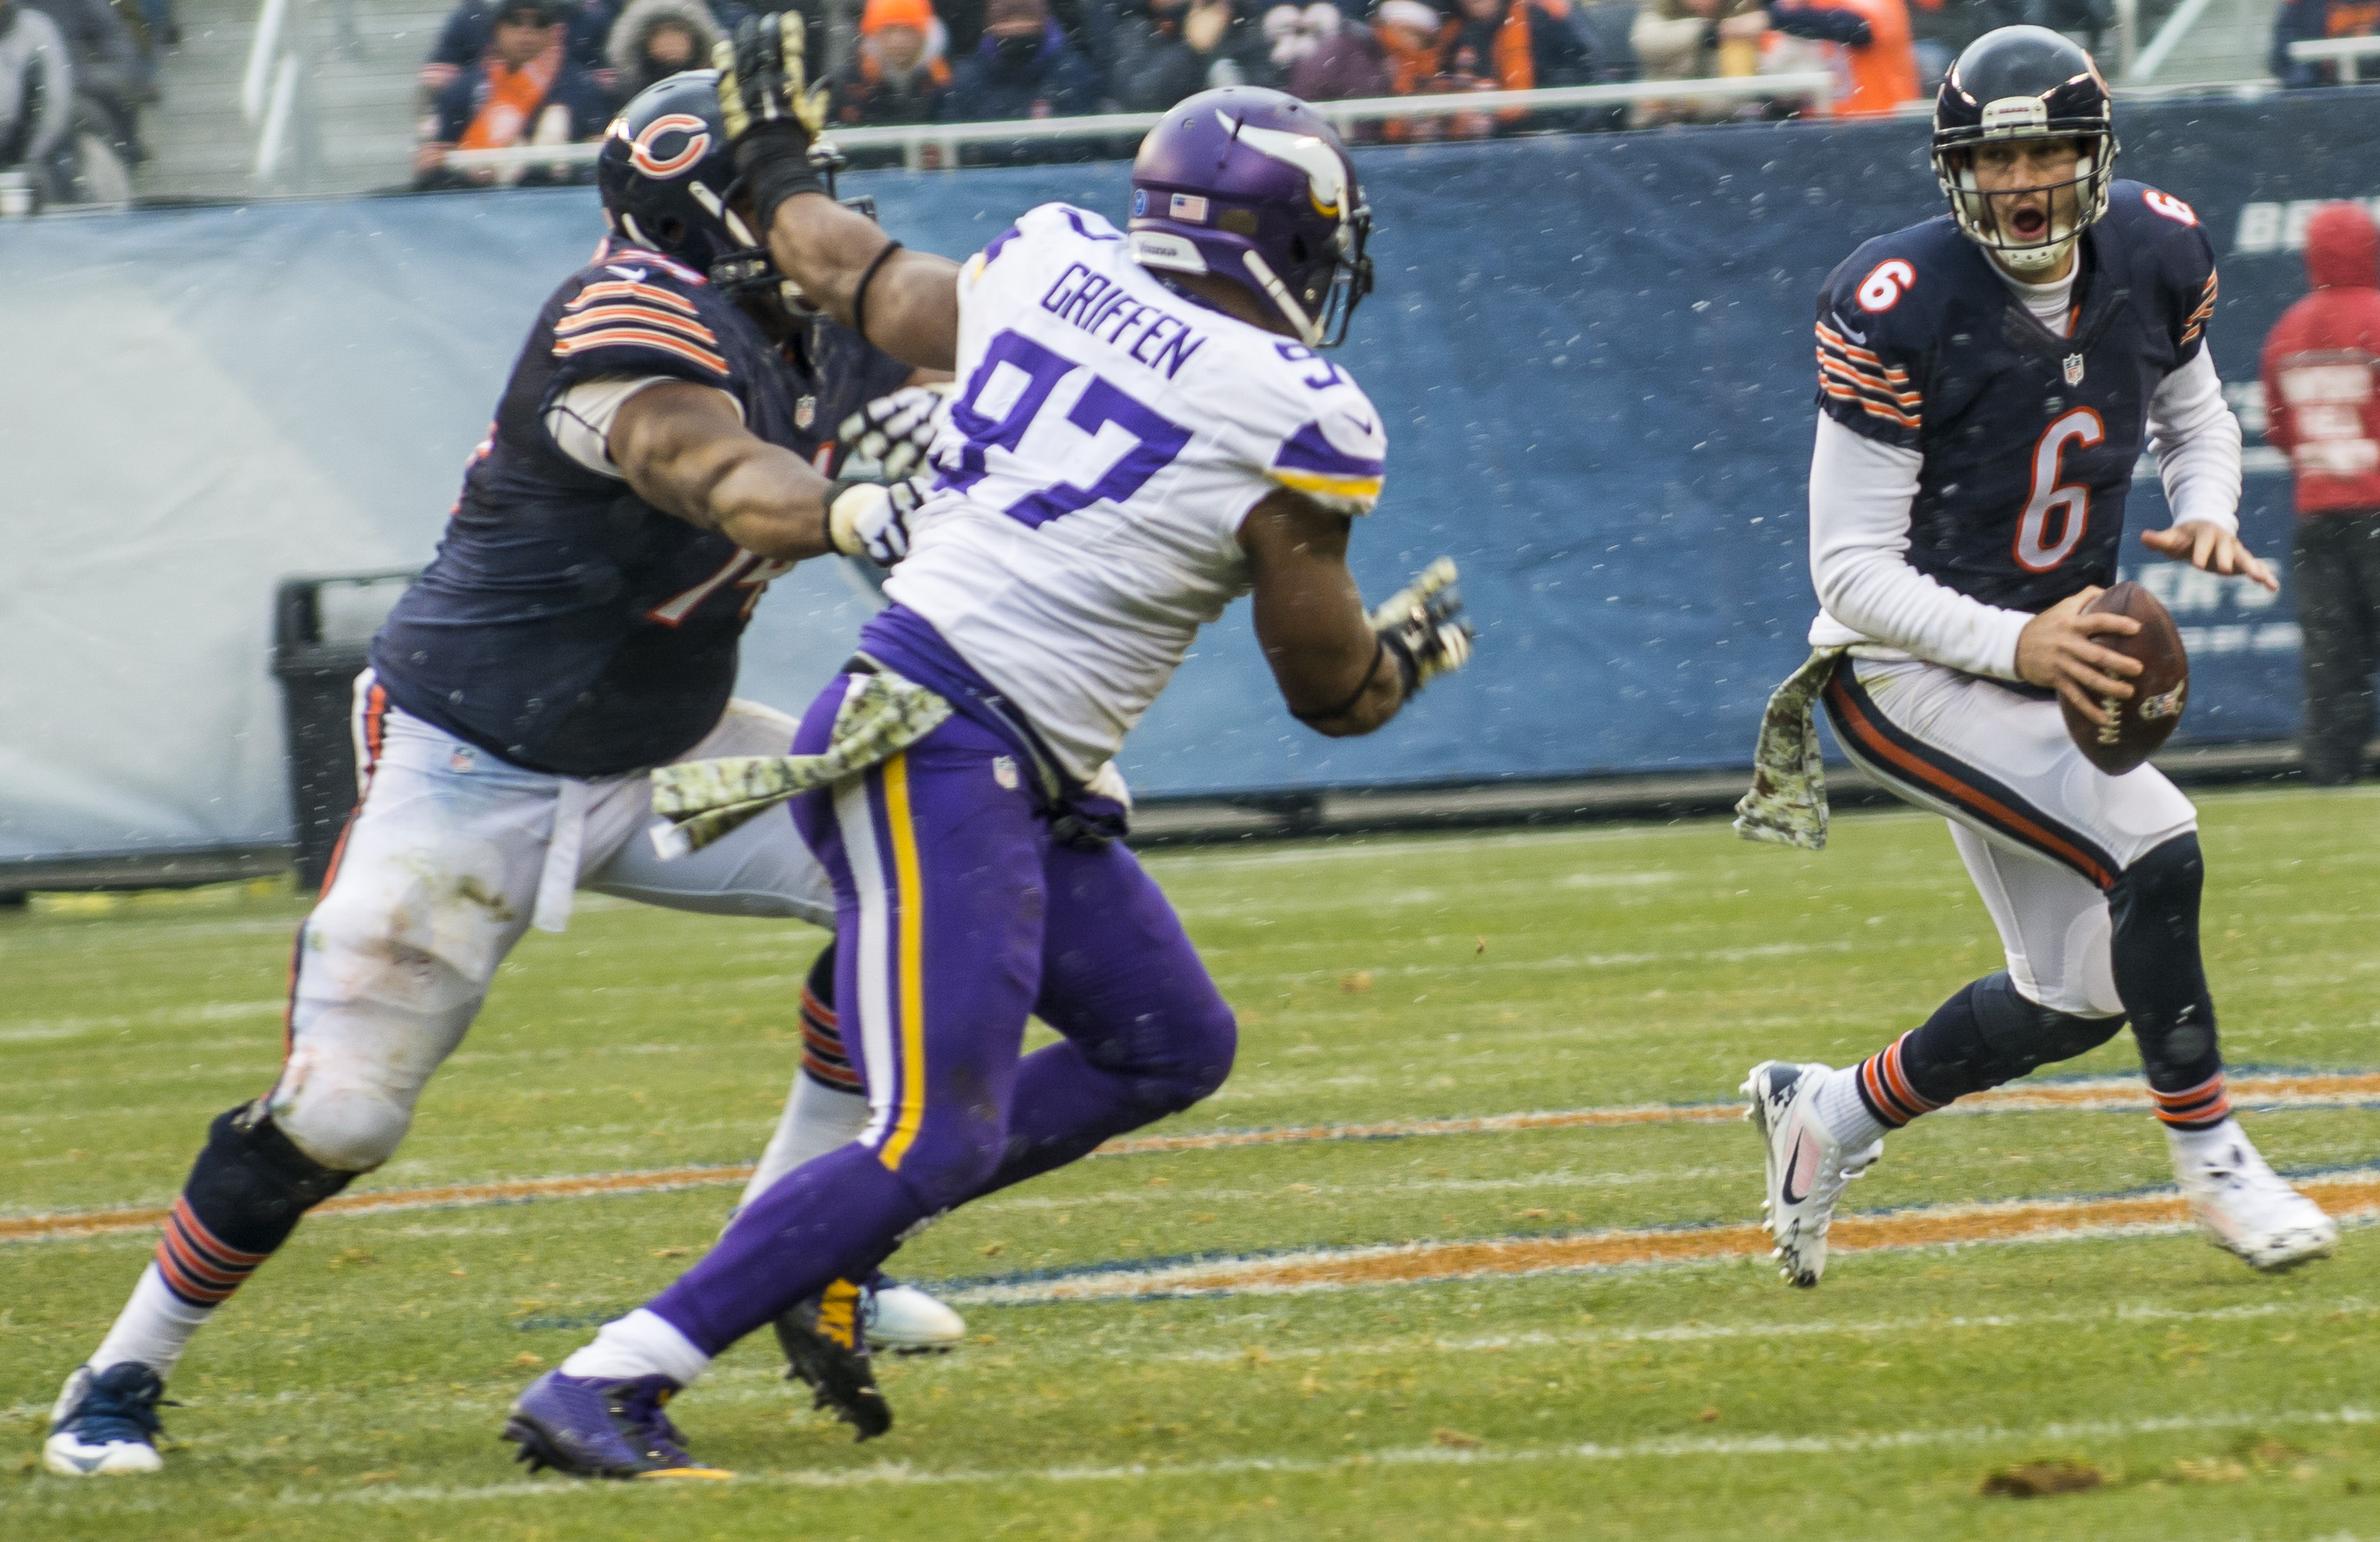 File Everson Griffen rushing Jay Cutler cropped Wikimedia